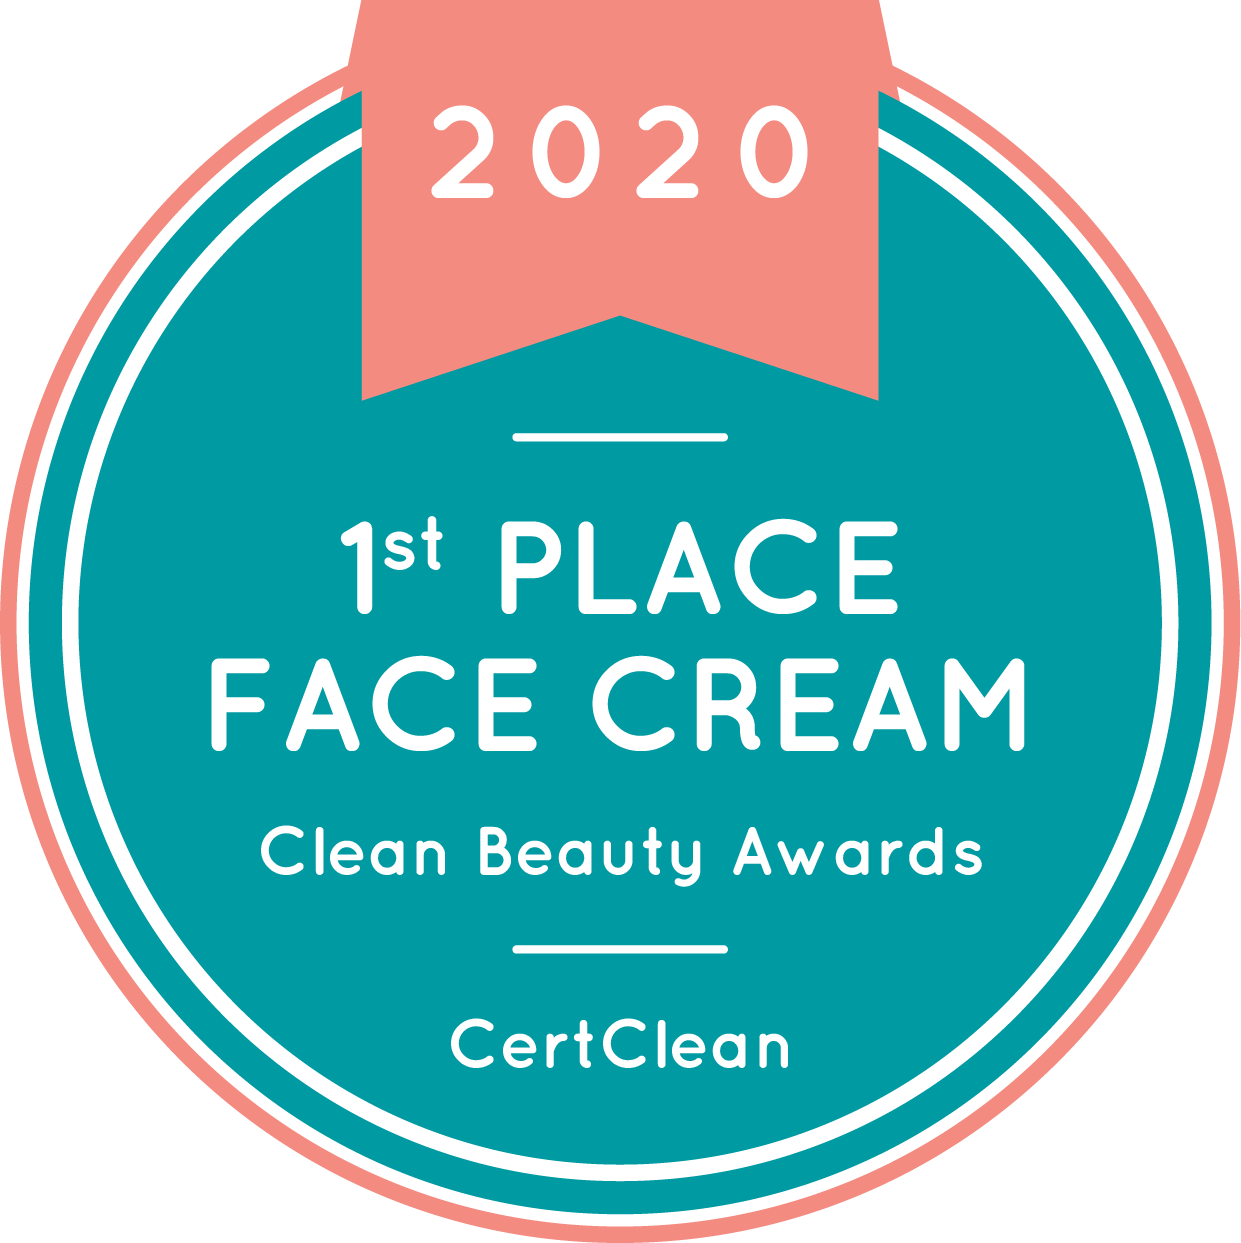 Best natural and clean face cream for sensitive skin 2020